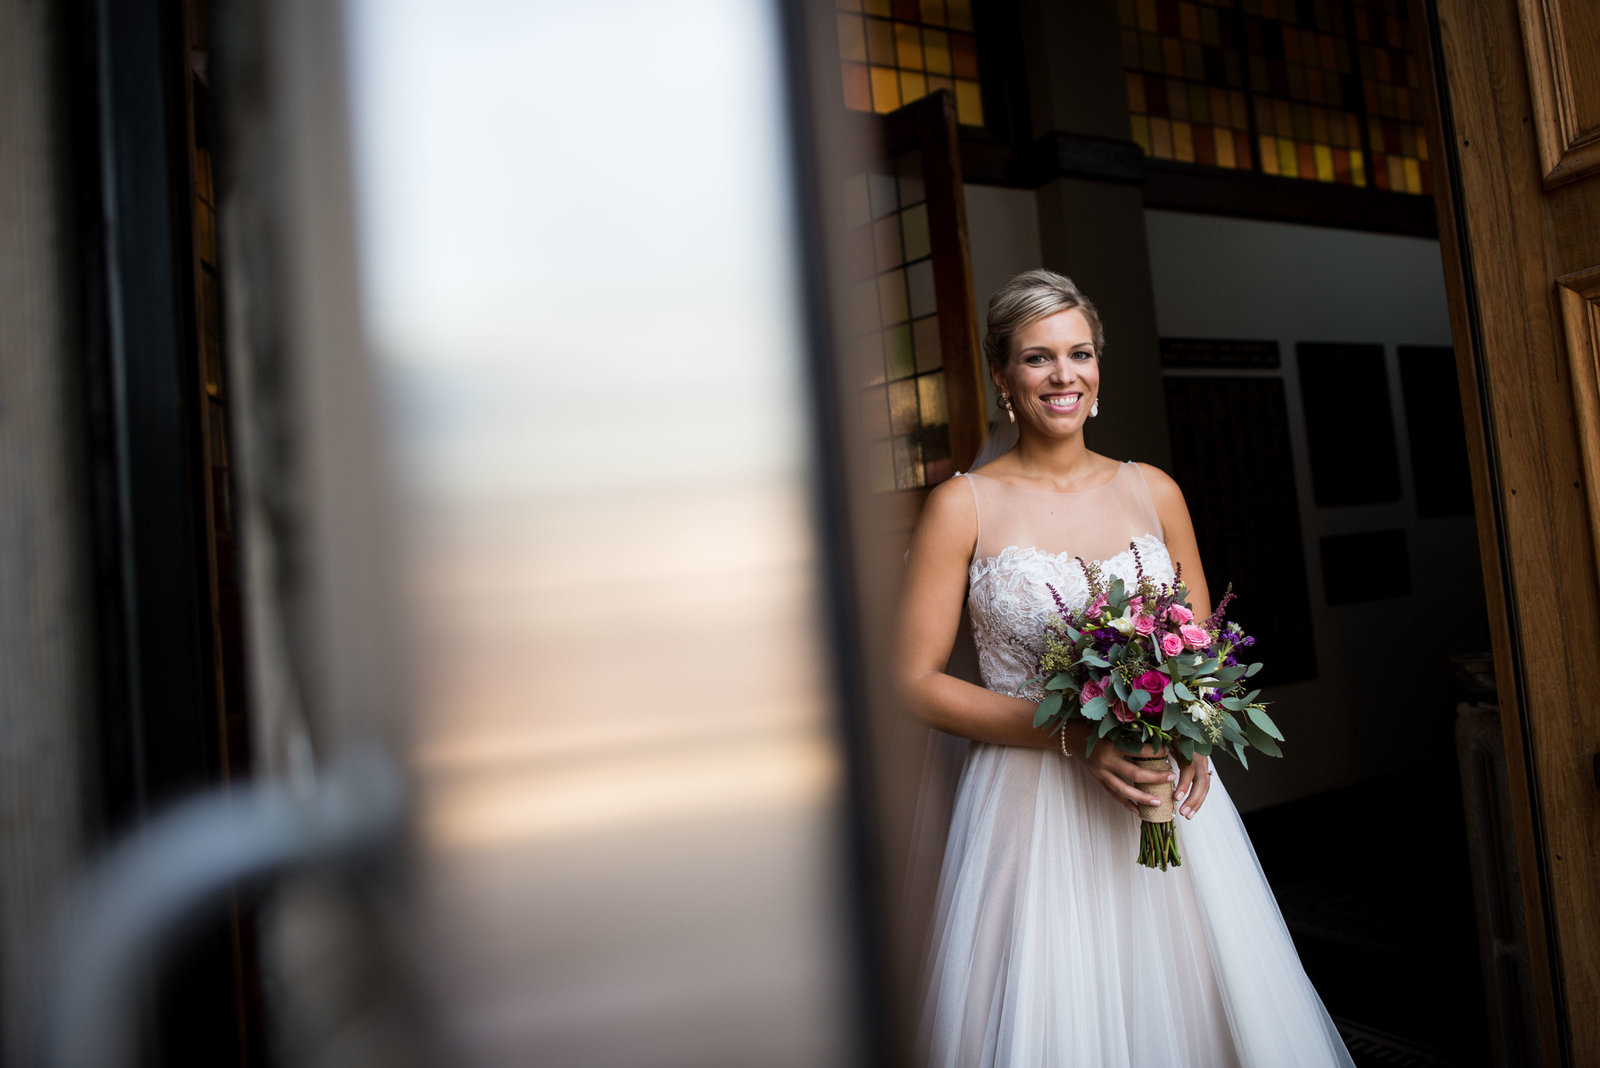 Bride poses at church door with bouquet after Chicago wedding ceremony.